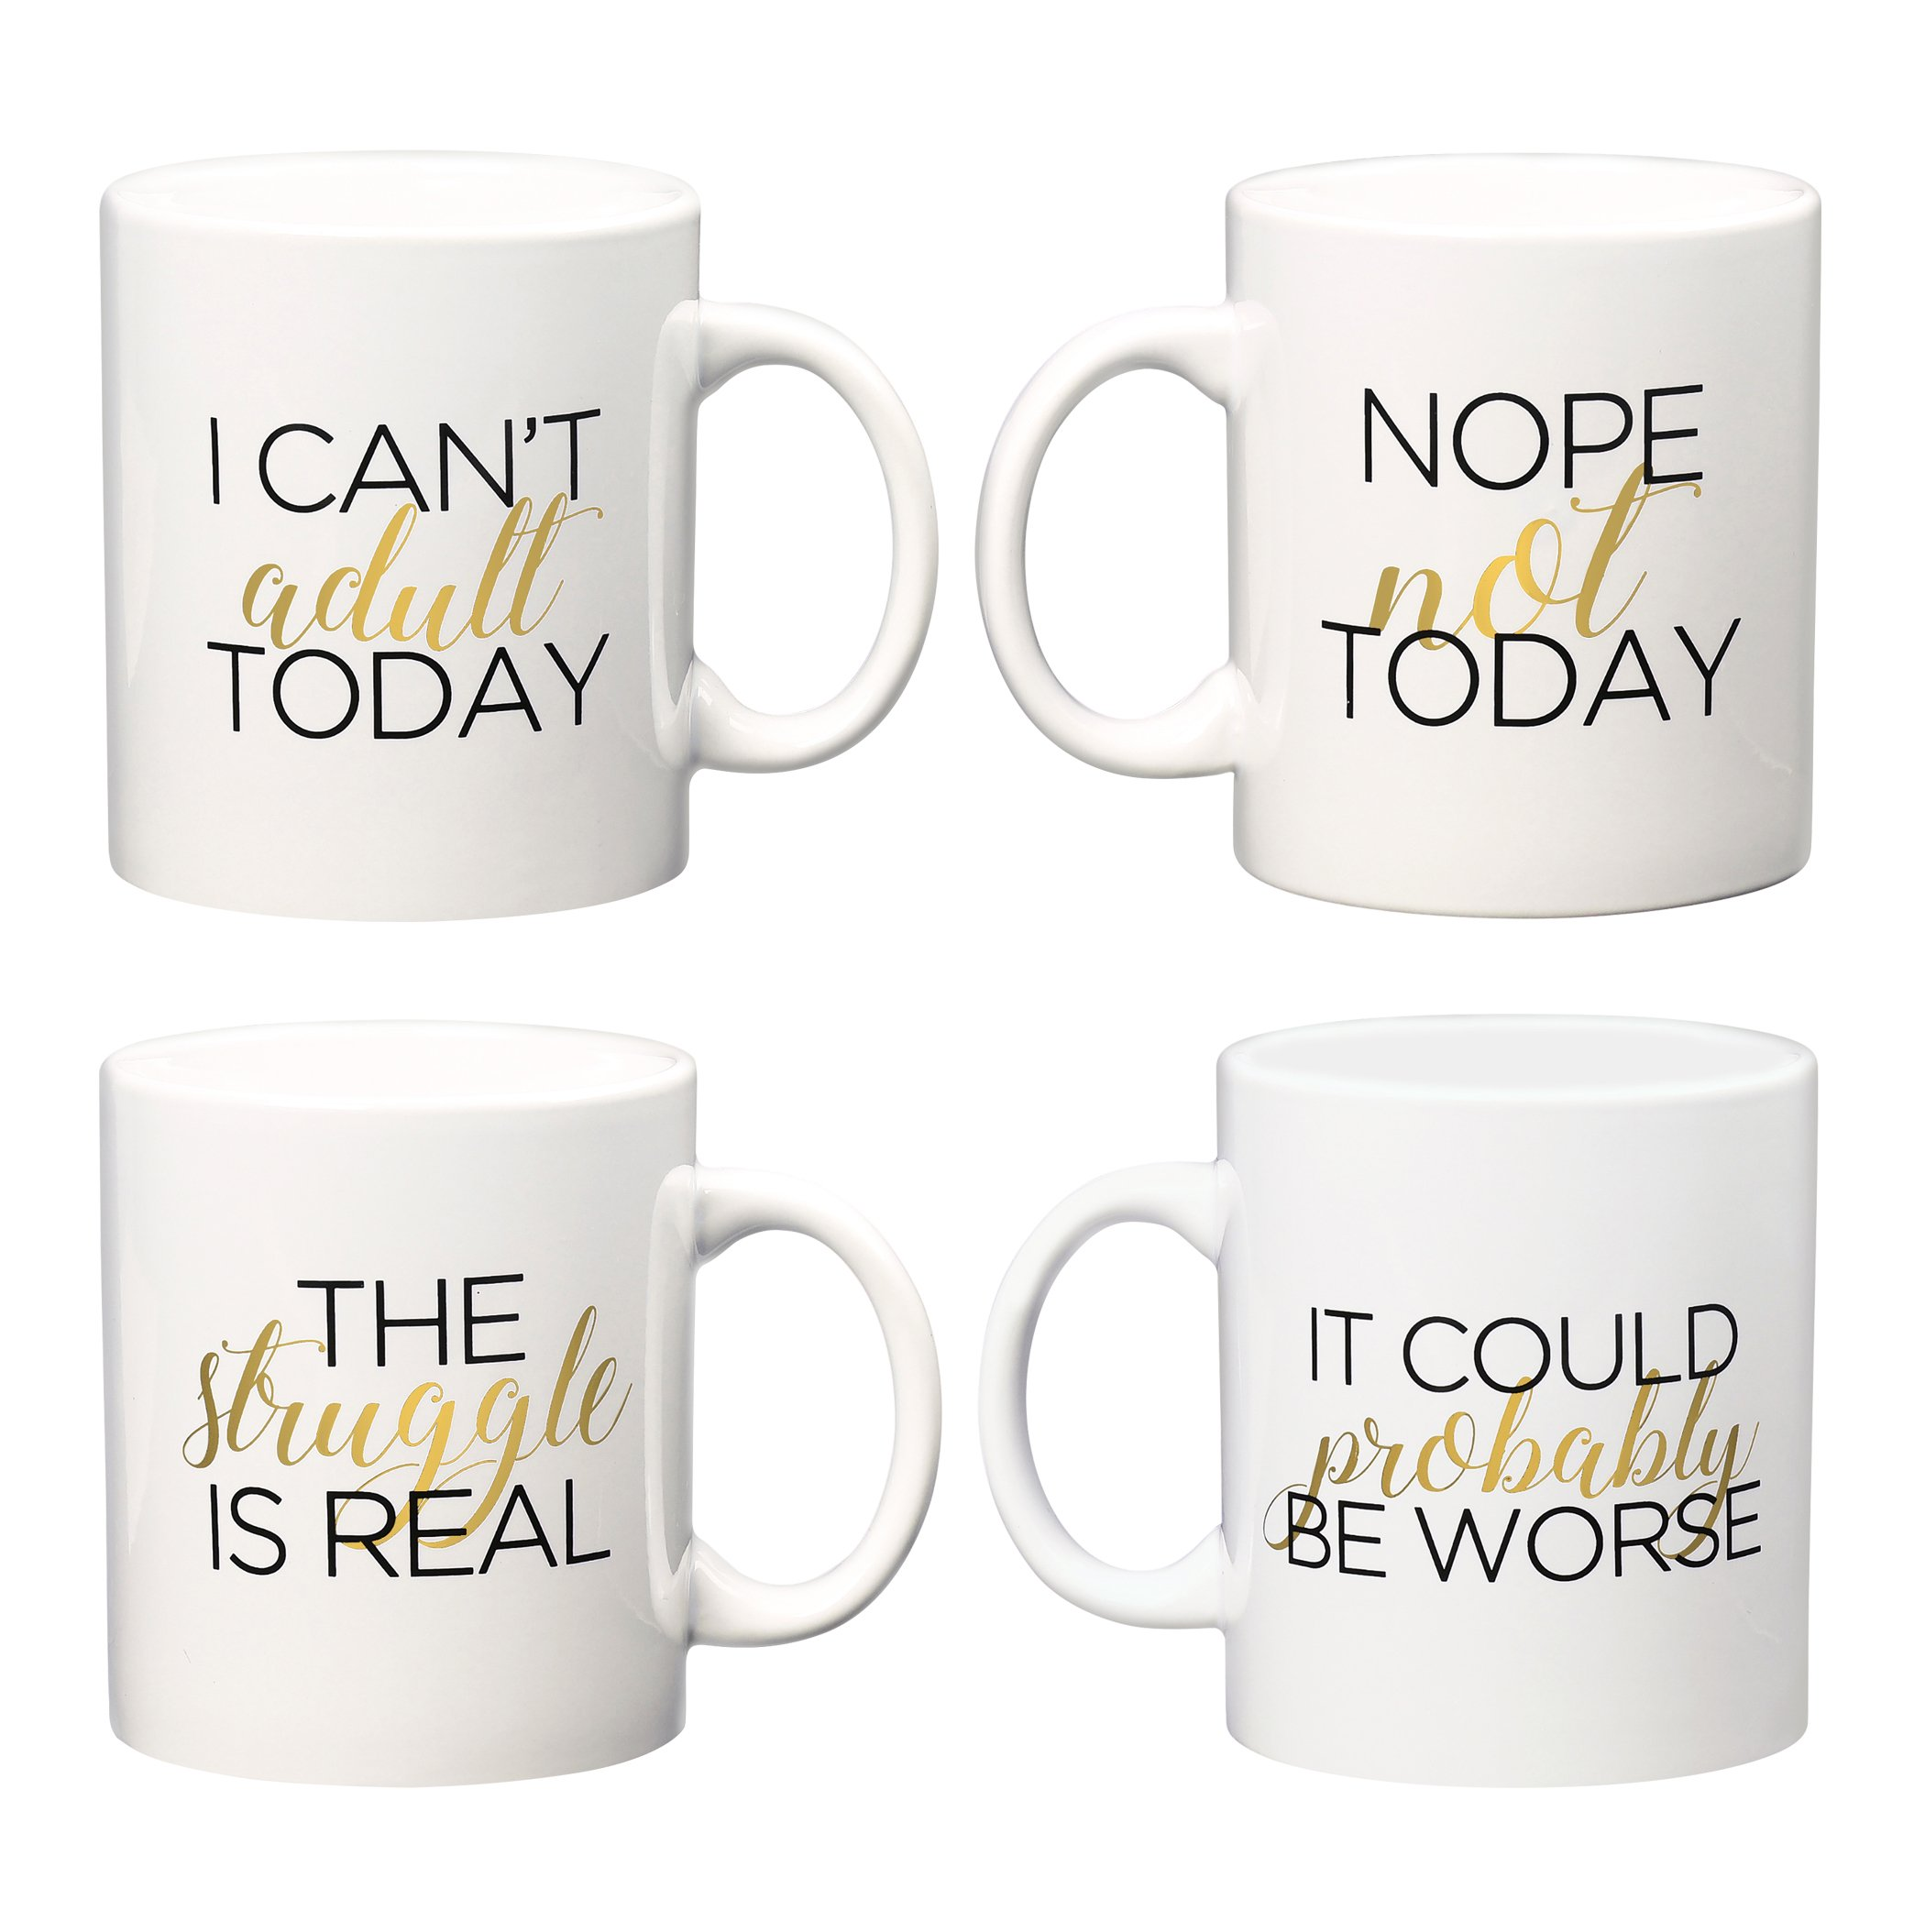 Amici Home, 7CW005AS4R, Adulting Coffee Mug Collection, Ceramic Coffee Mugs, Microwave Safe, Dishwasher Safe, 32 Ounces, Assorted Set of 4